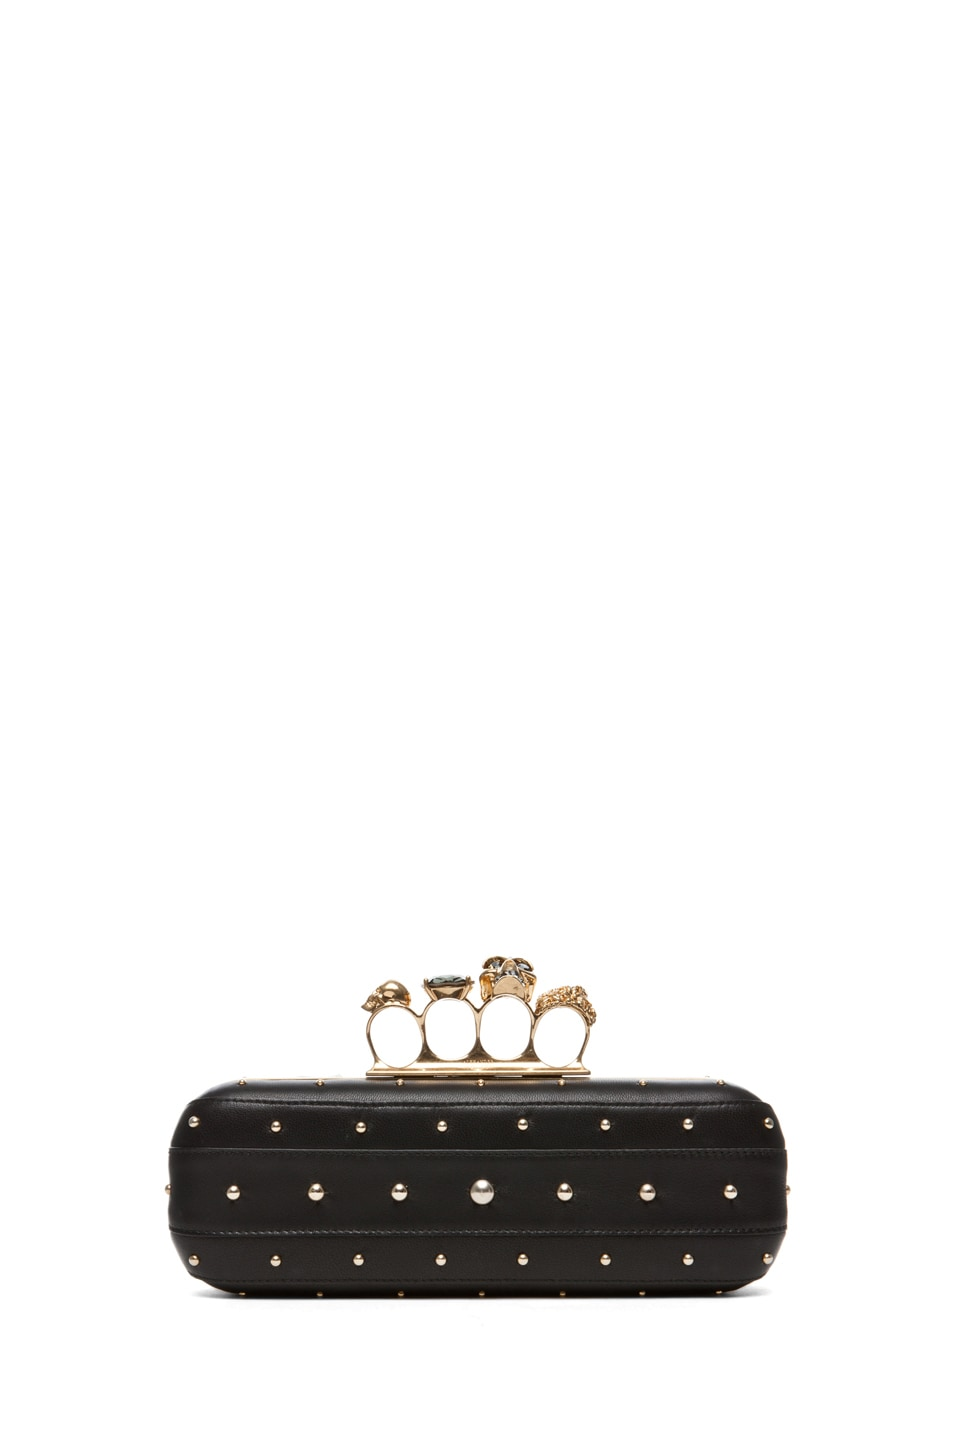 Image 1 of Alexander McQueen Knuckle Box Long Clutch in Black